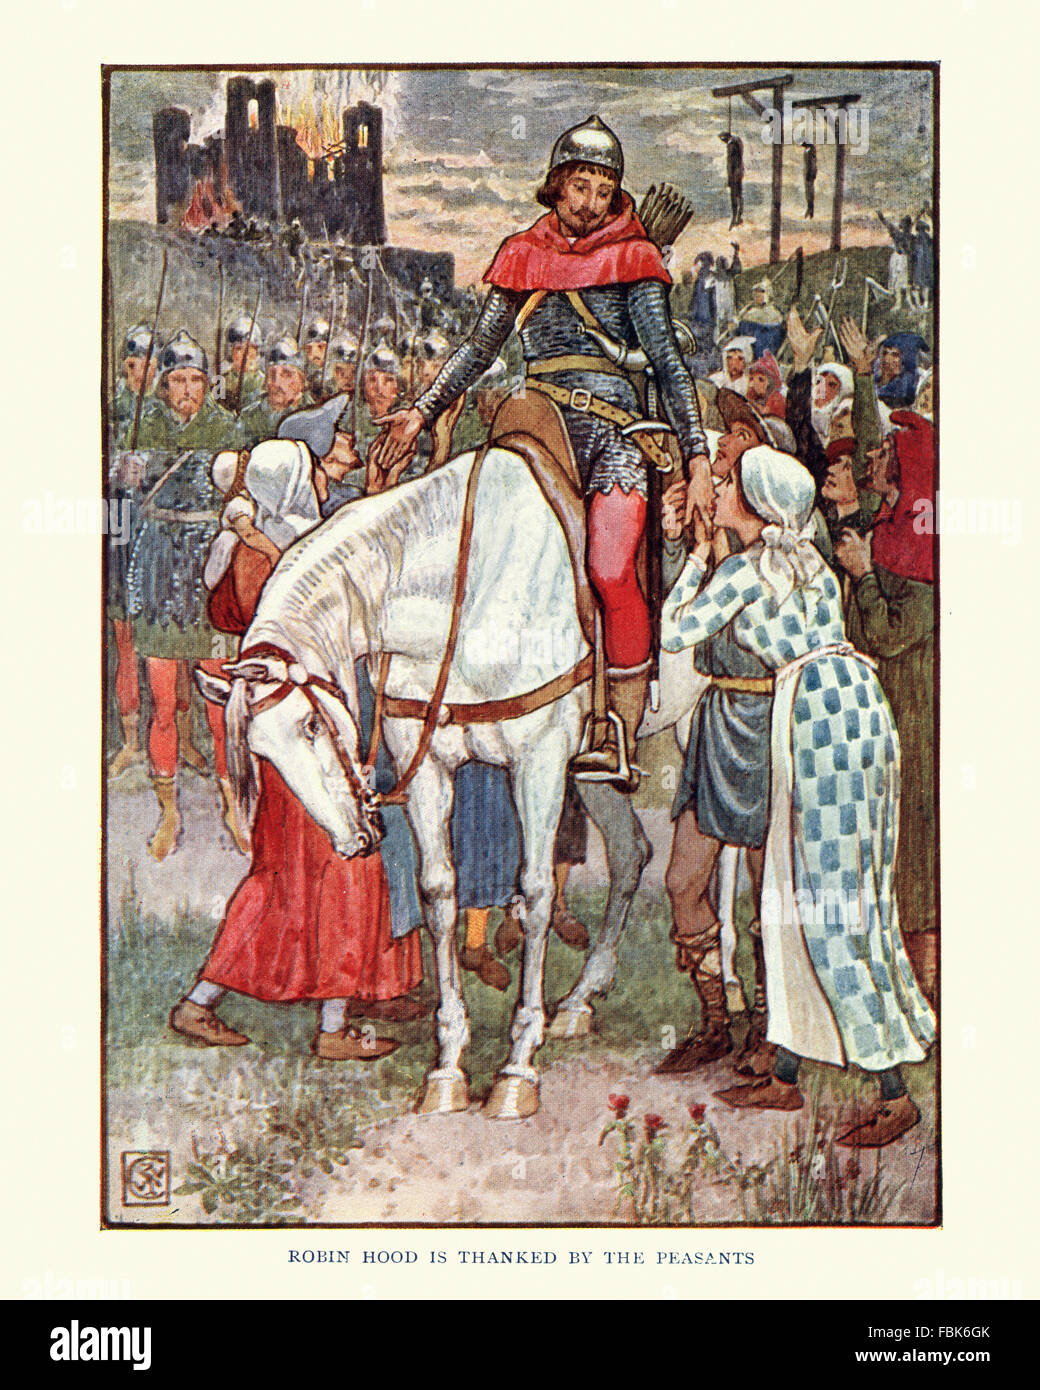 Illustration from the story of Robin Hood. Robin Hood is thanked by the Peasants. By Walter Crane - Stock Image